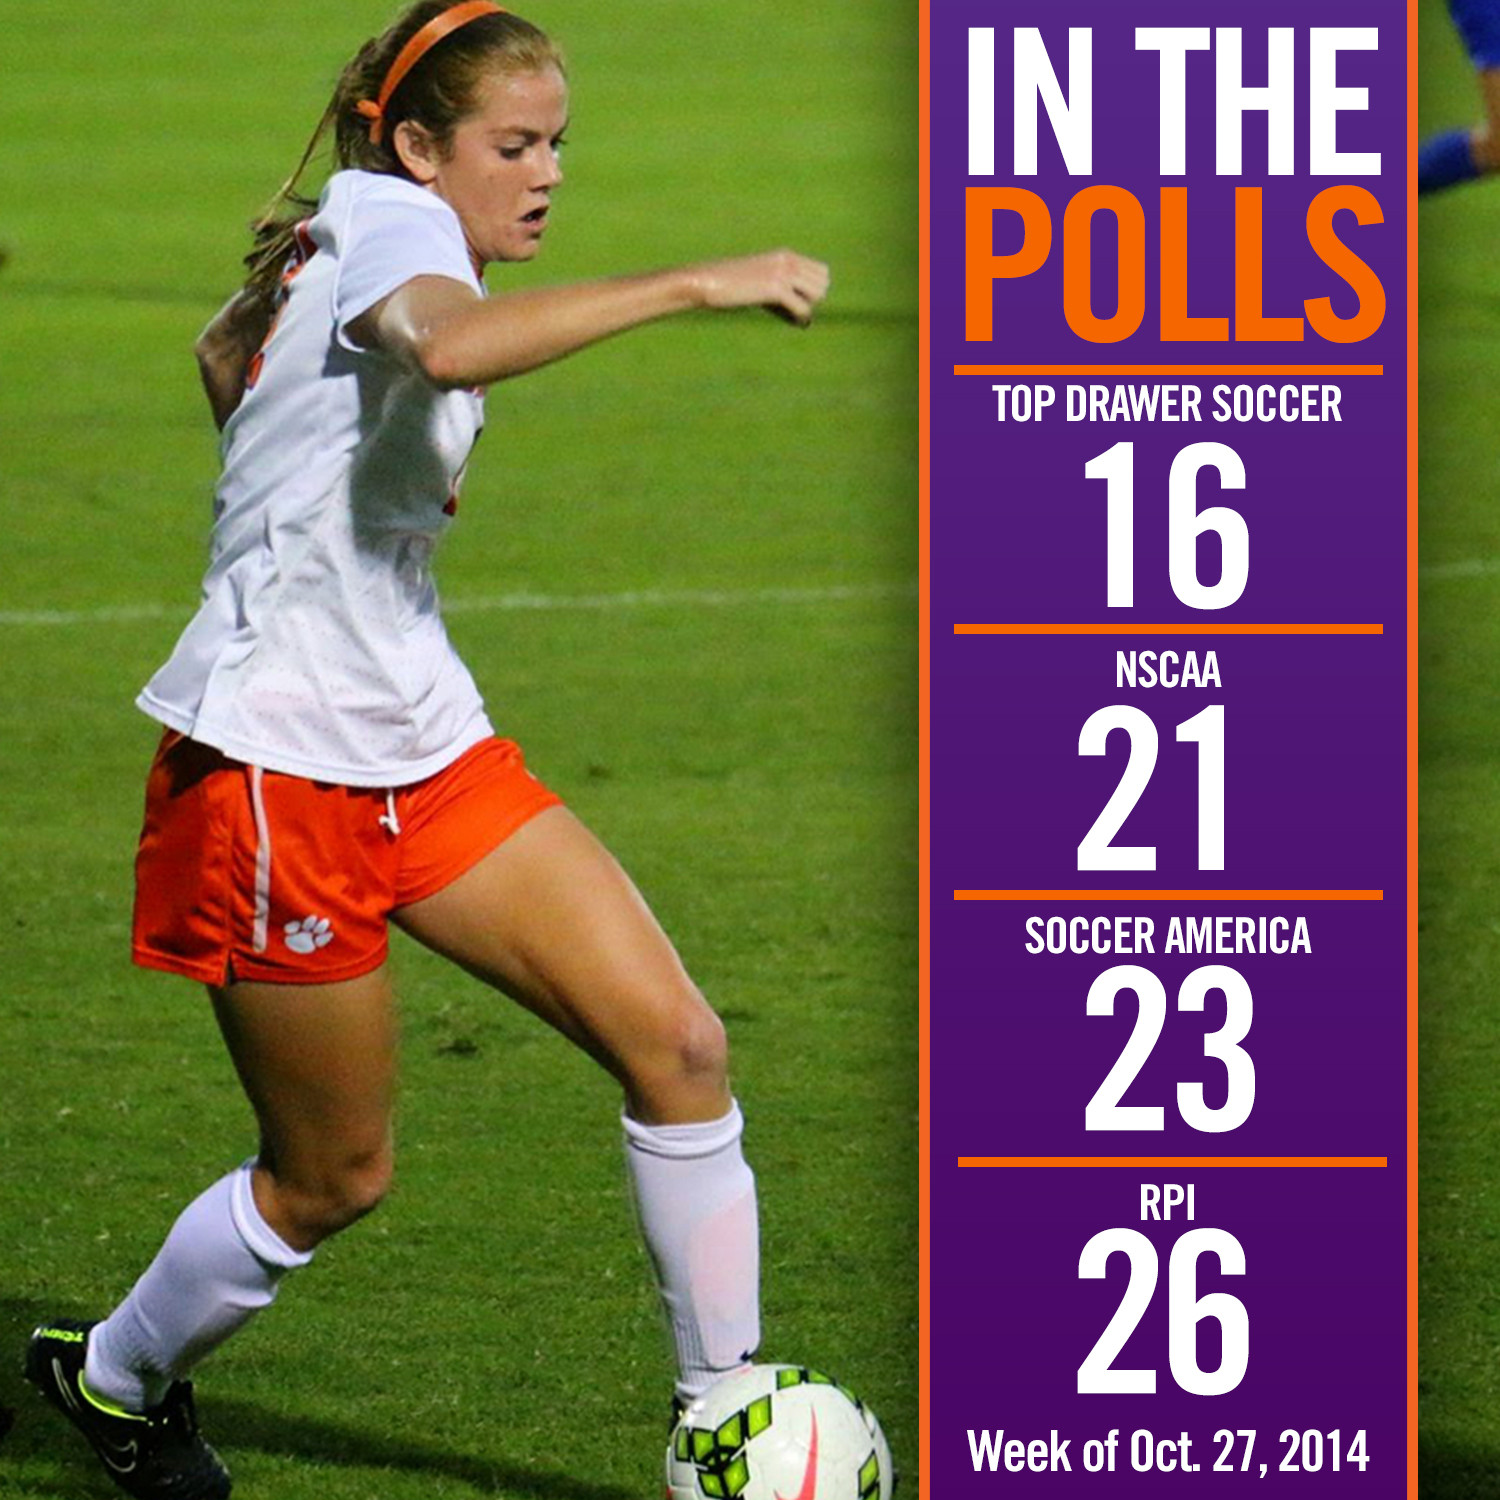 Tigers Ranked in All Three Polls, As High as 16